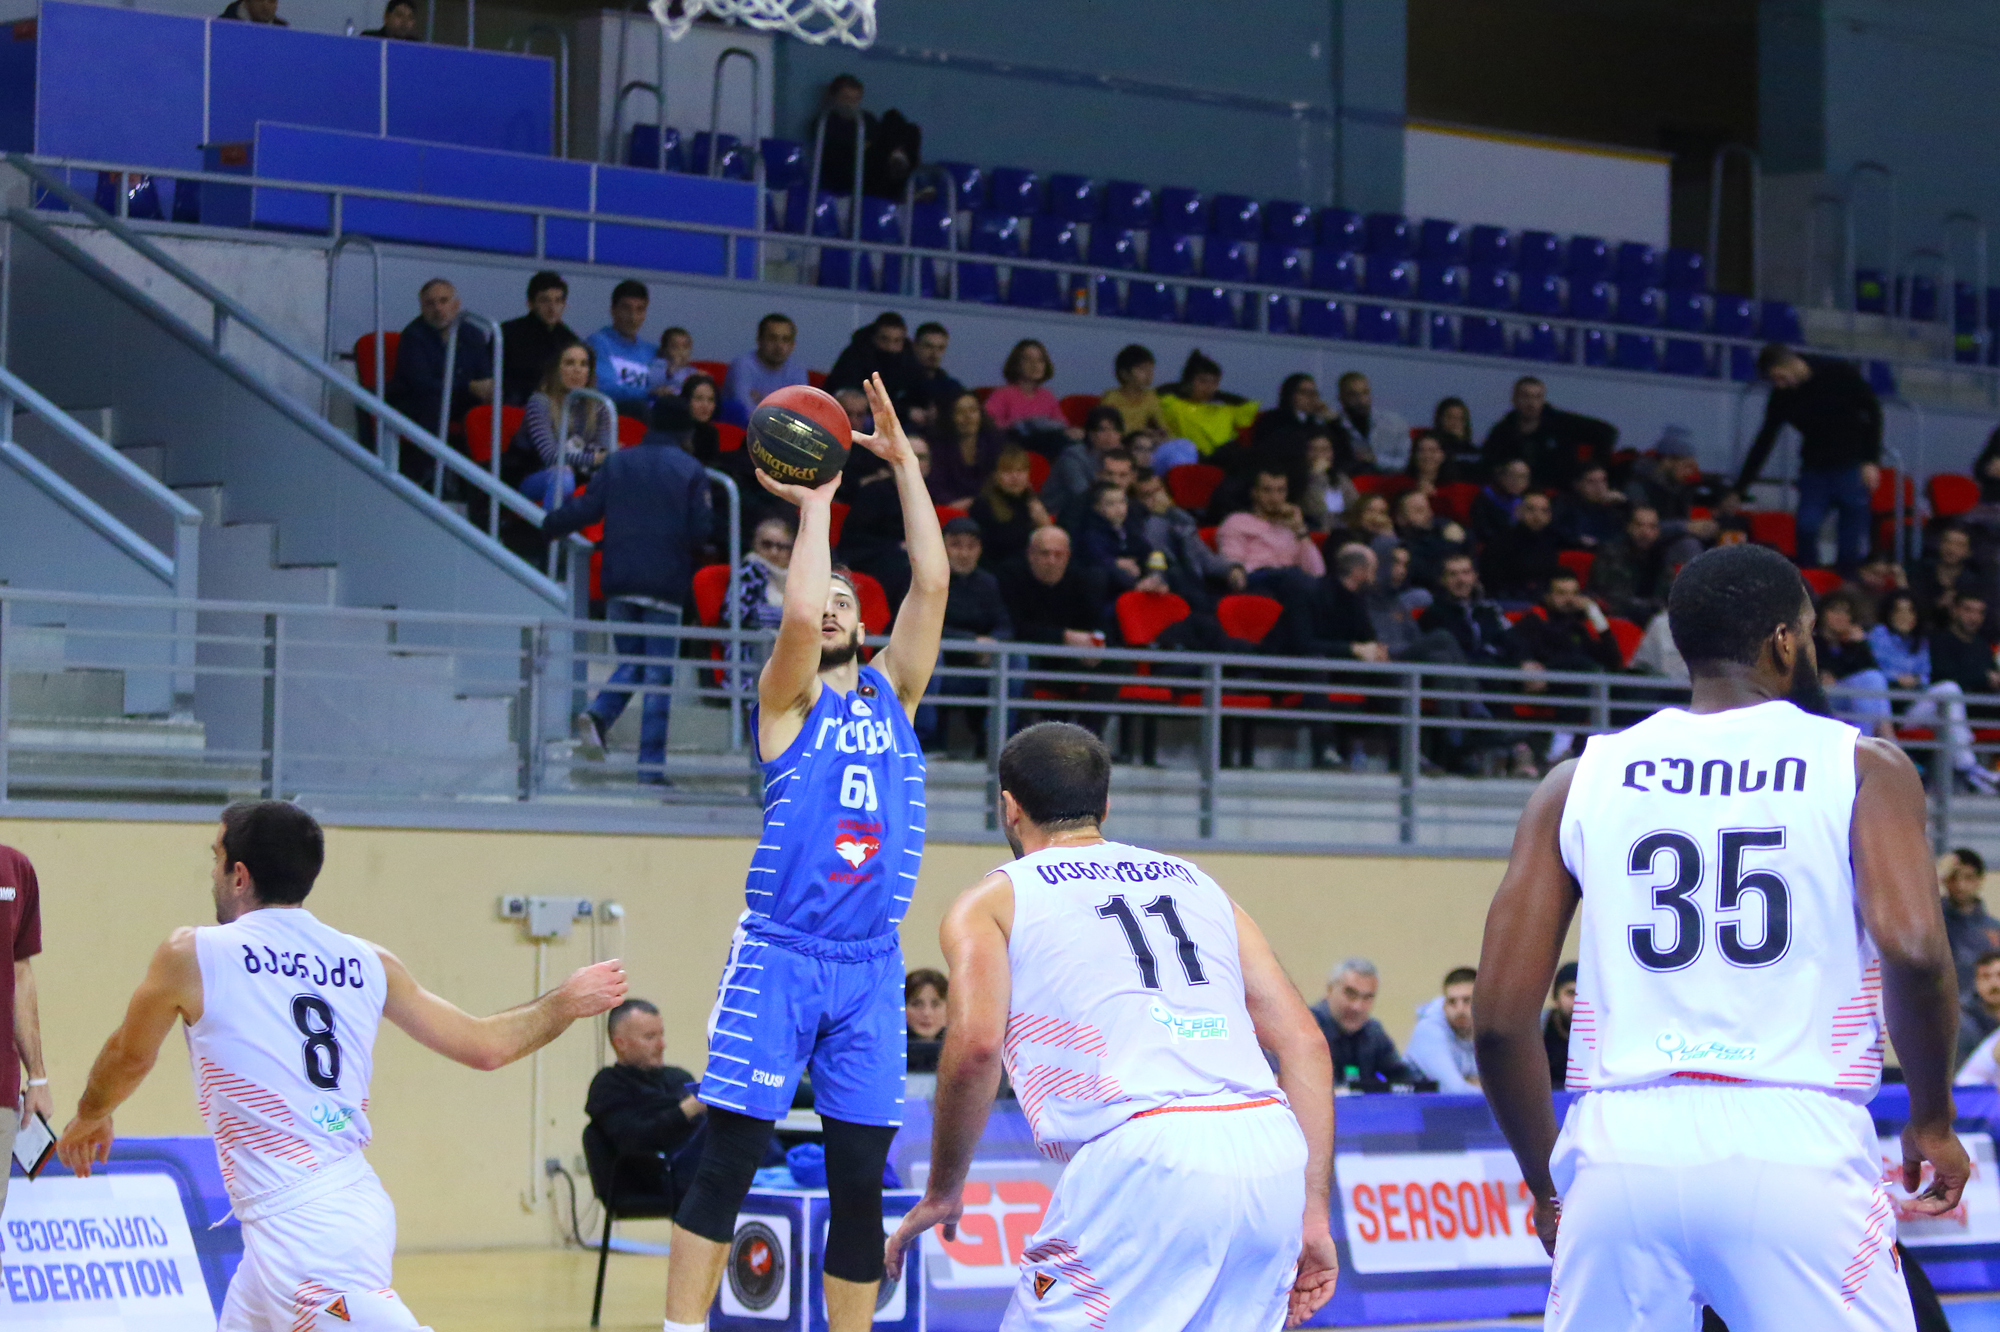 Olimpi's convincing victory and 15 three-pointers